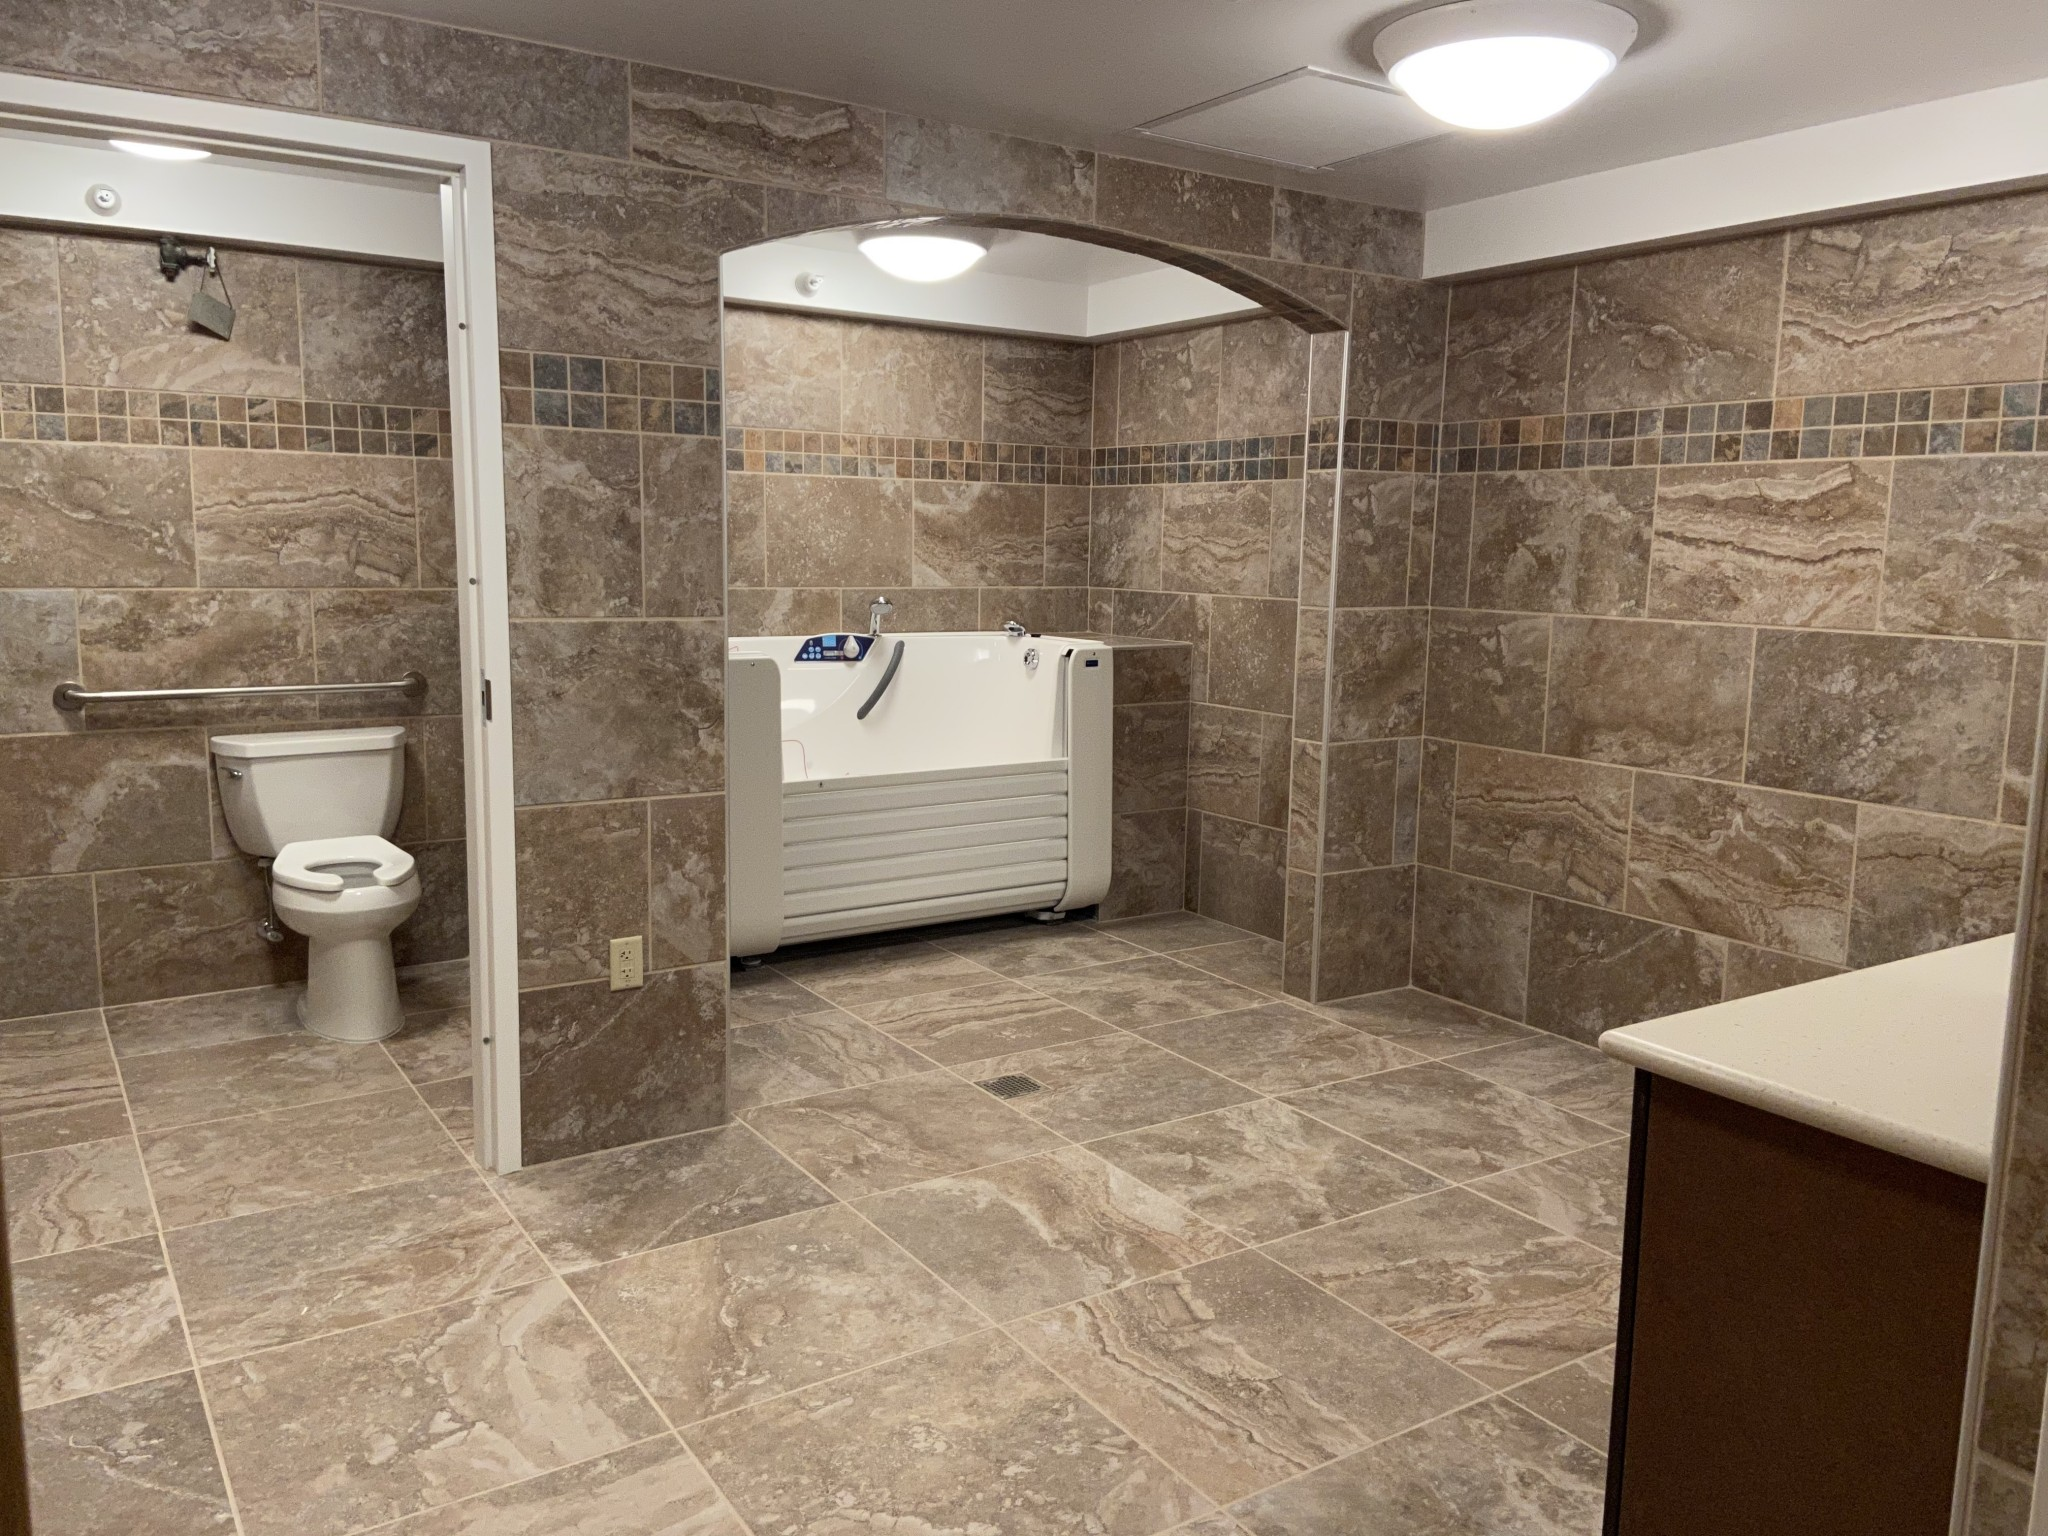 A spa room at Ottawa County Riverview's Hartford on the River Assisted Living features an easily accessible jet tub for residents who prefer a bath over the in-room shower option. (Submitted photo)